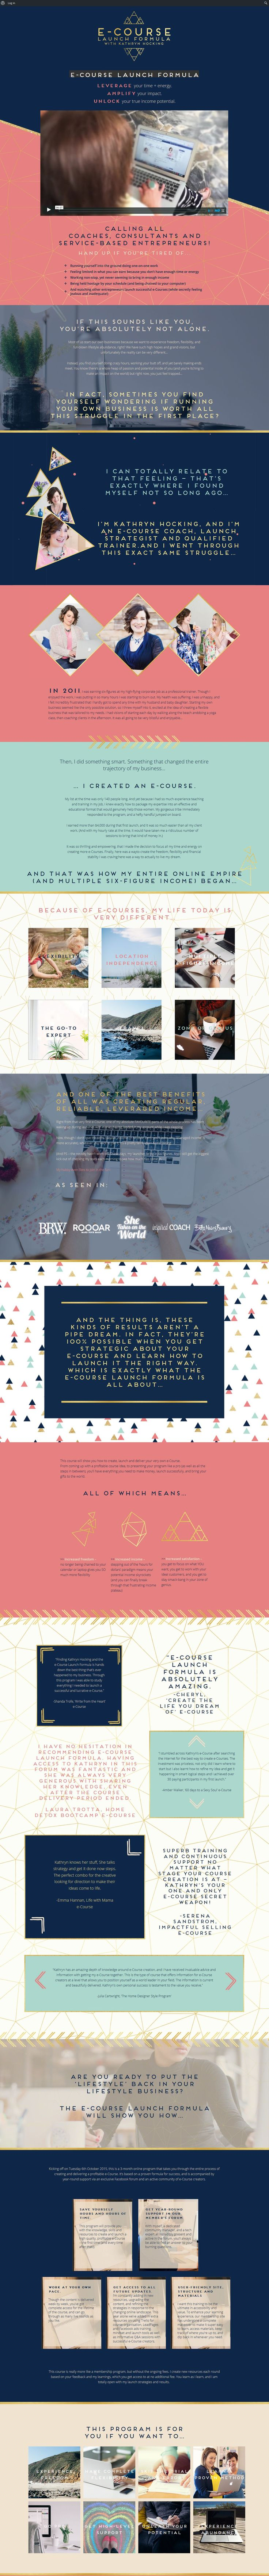 222 best images about Brand Soul Board on Pinterest